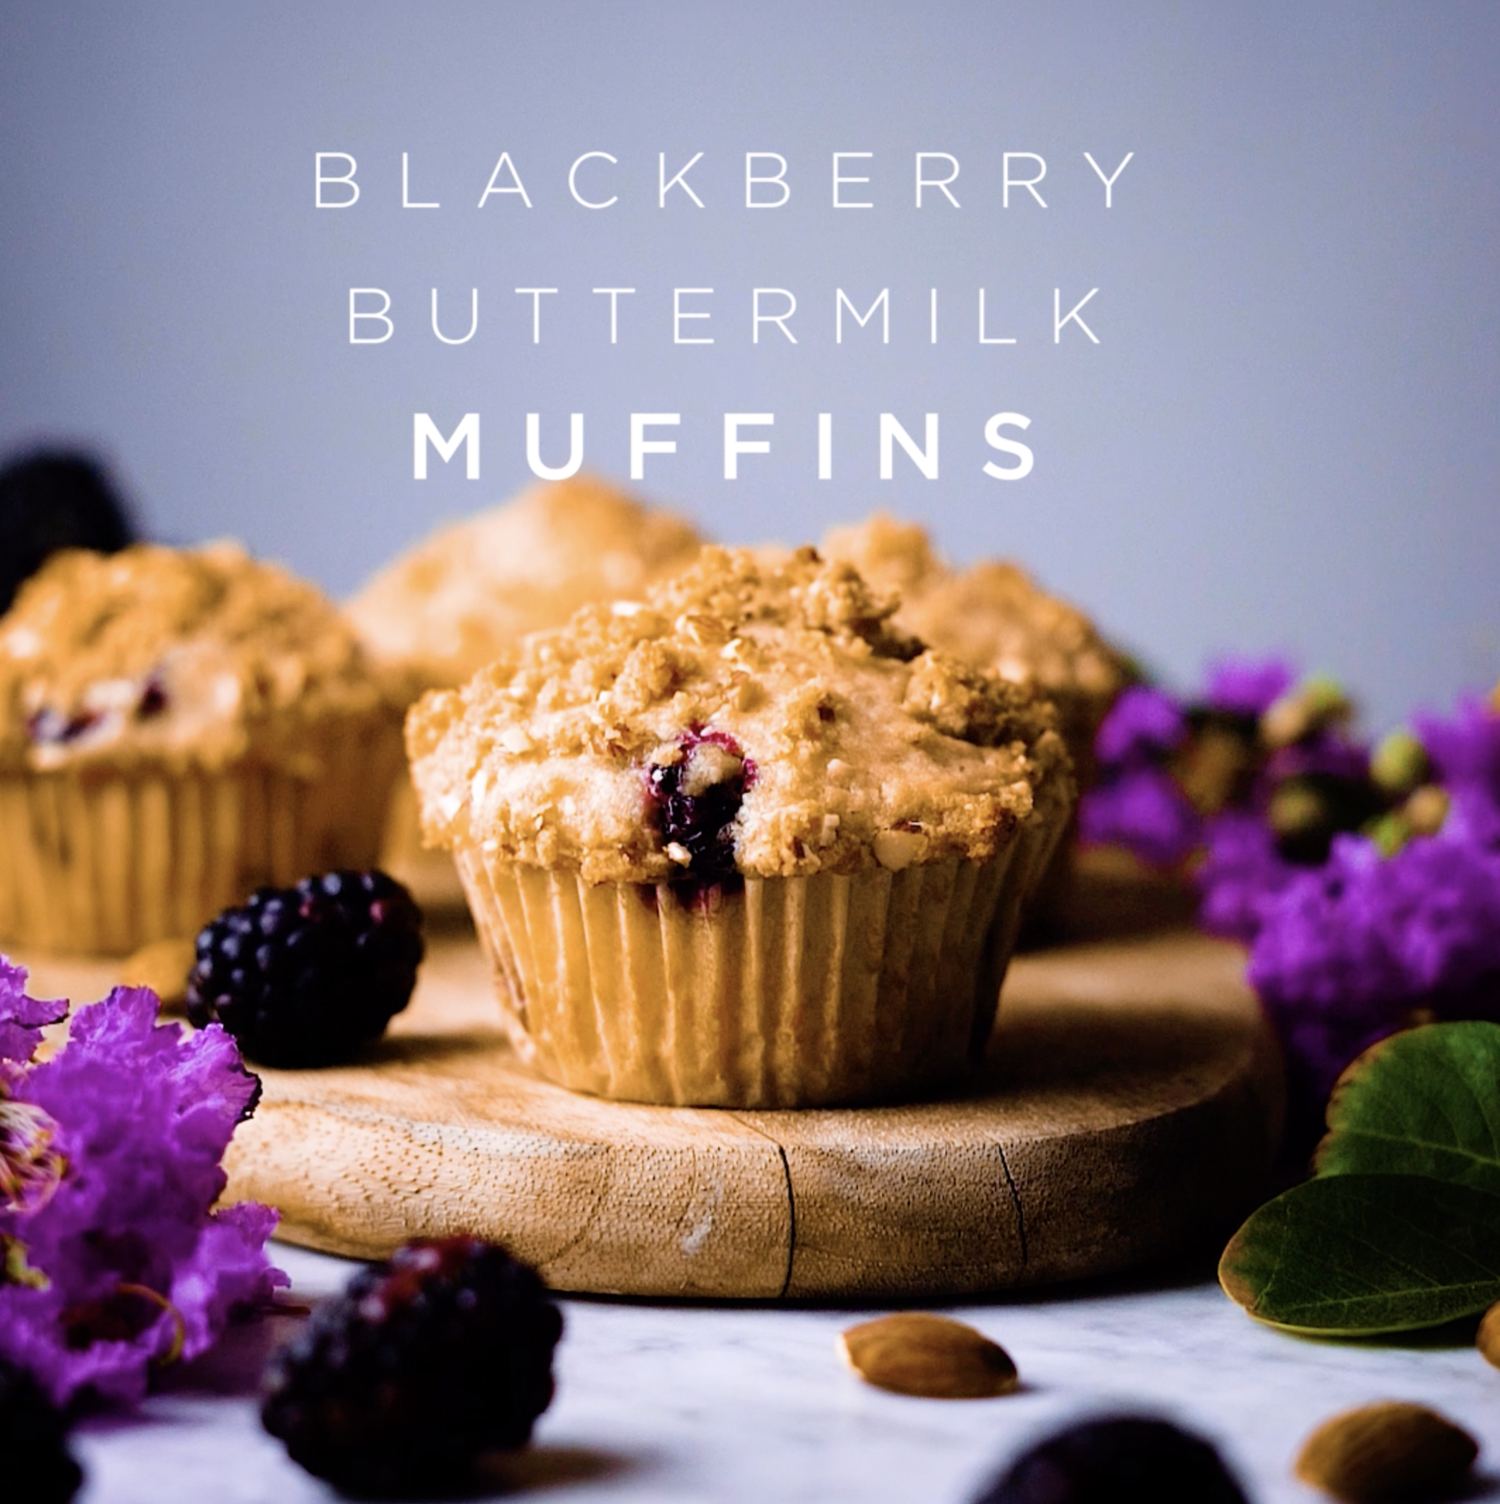 Blackberry Buttermilk Muffins The Broken Bread In 2020 Buttermilk Muffins Cinnamon Streusel Coffee Cake Streusel Topping For Muffins